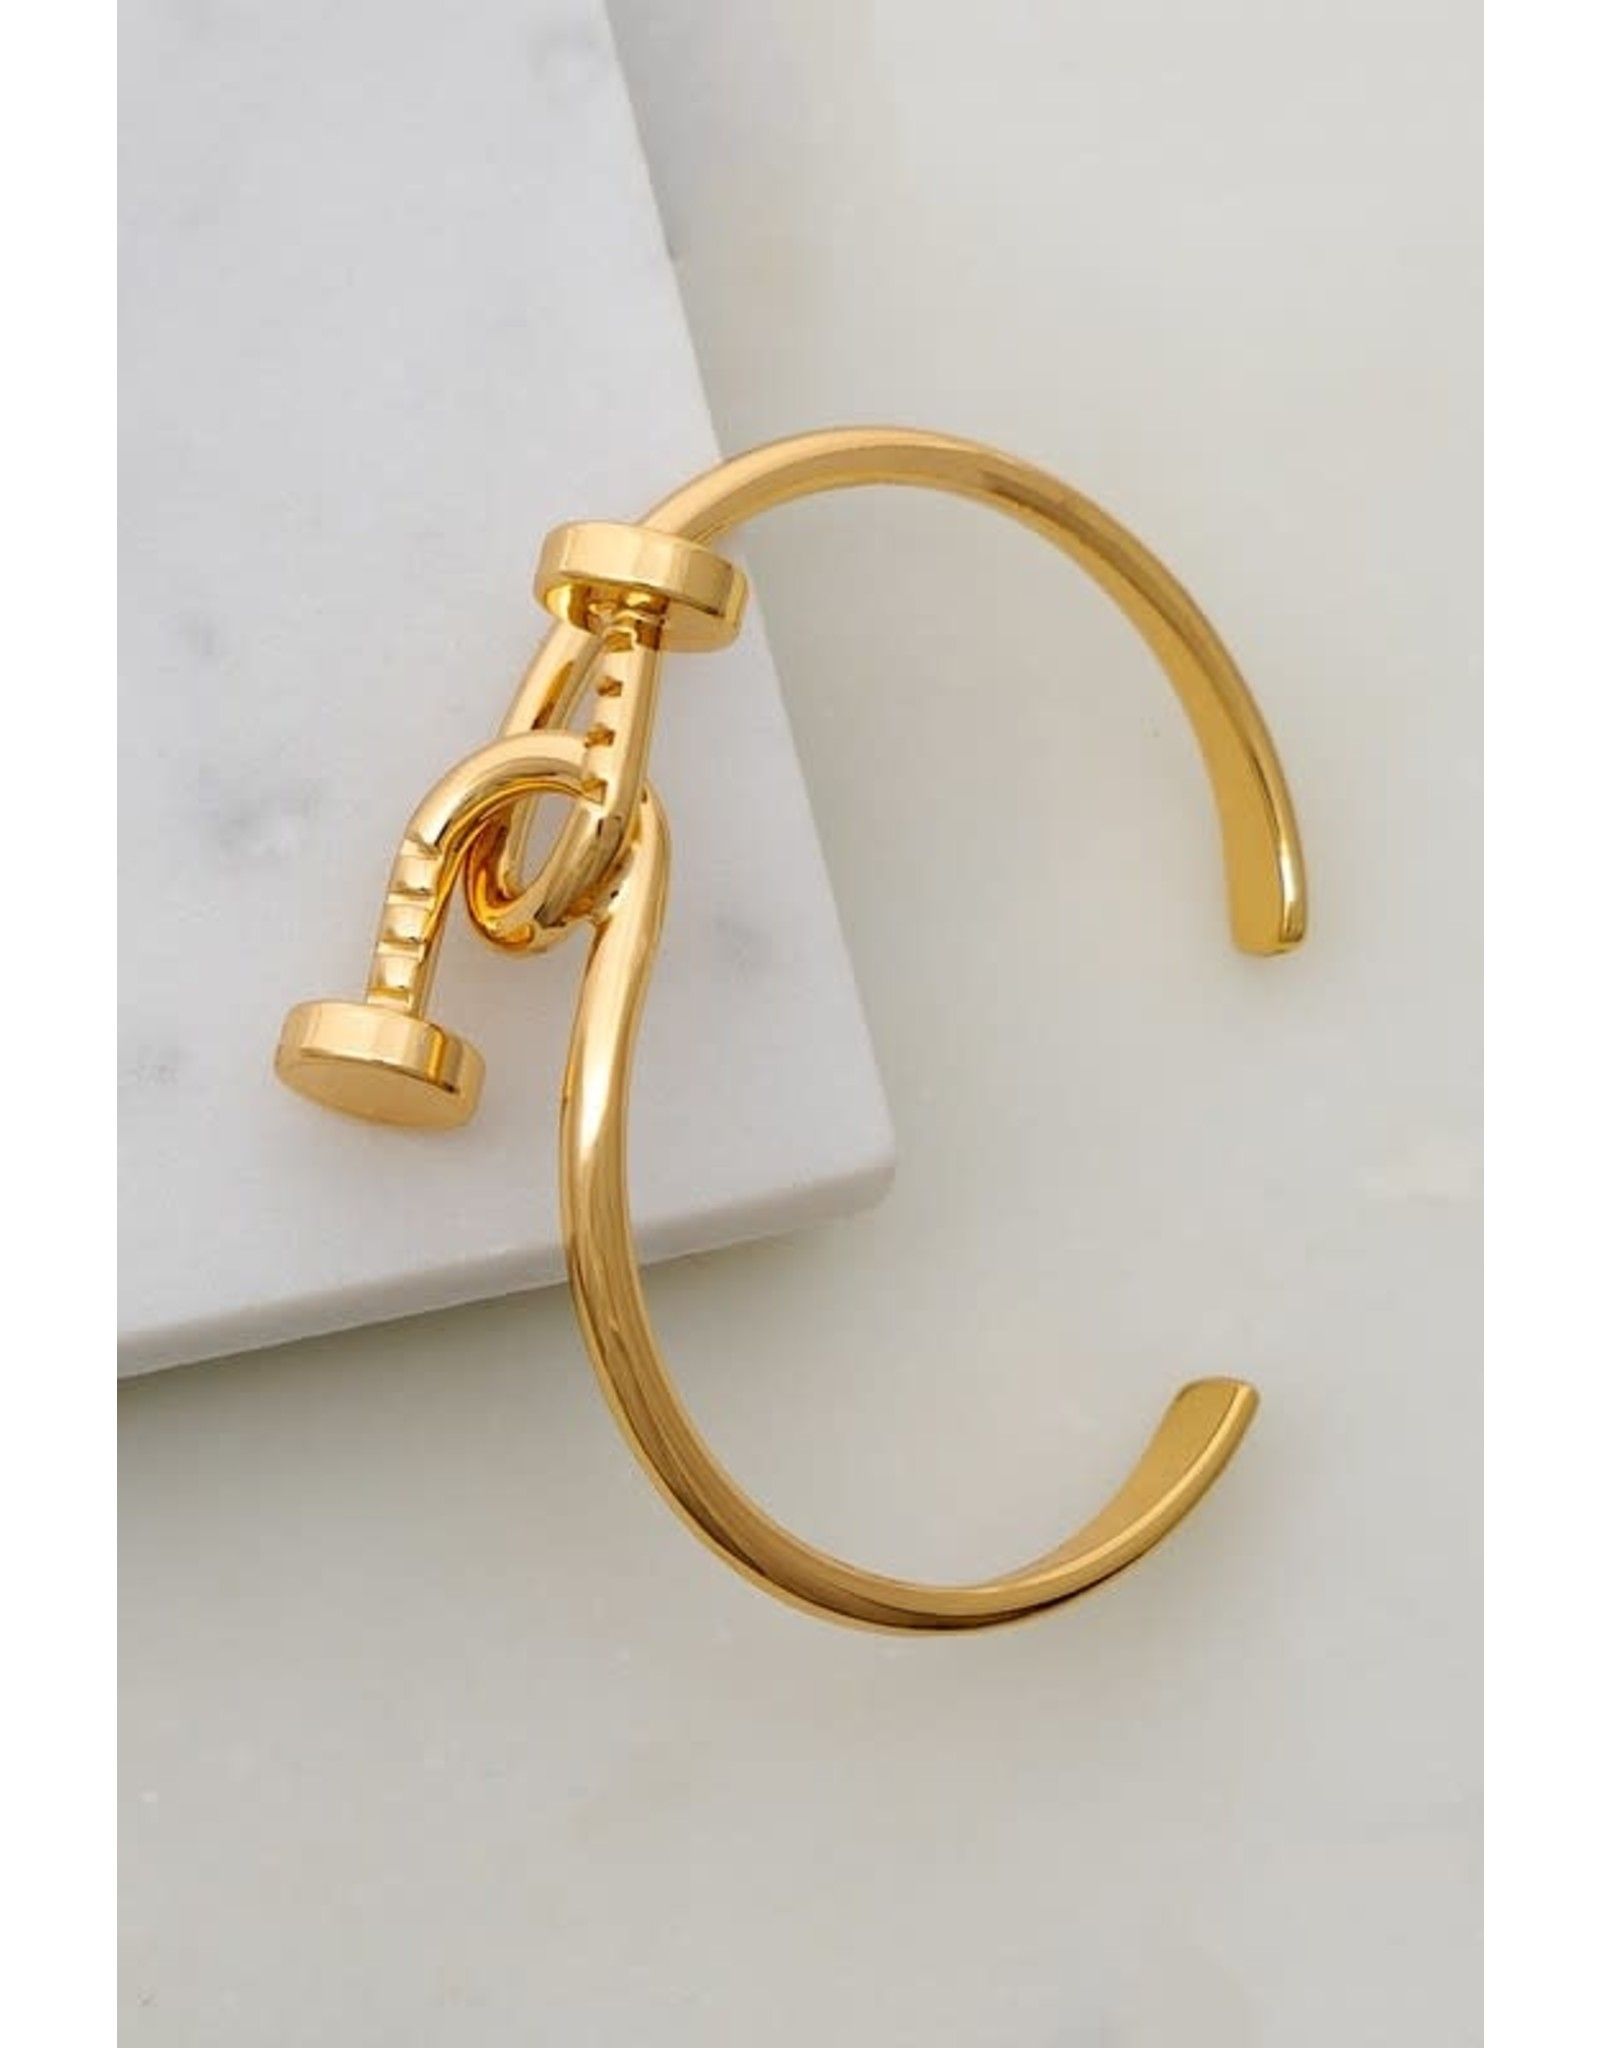 Made Of High Quality Brass. Shiny And Smooth Finish. Shiny Gold Plating. Size: One Size Fits All Intertwined Brass Nails Cuff Bracelet - Color: Gold